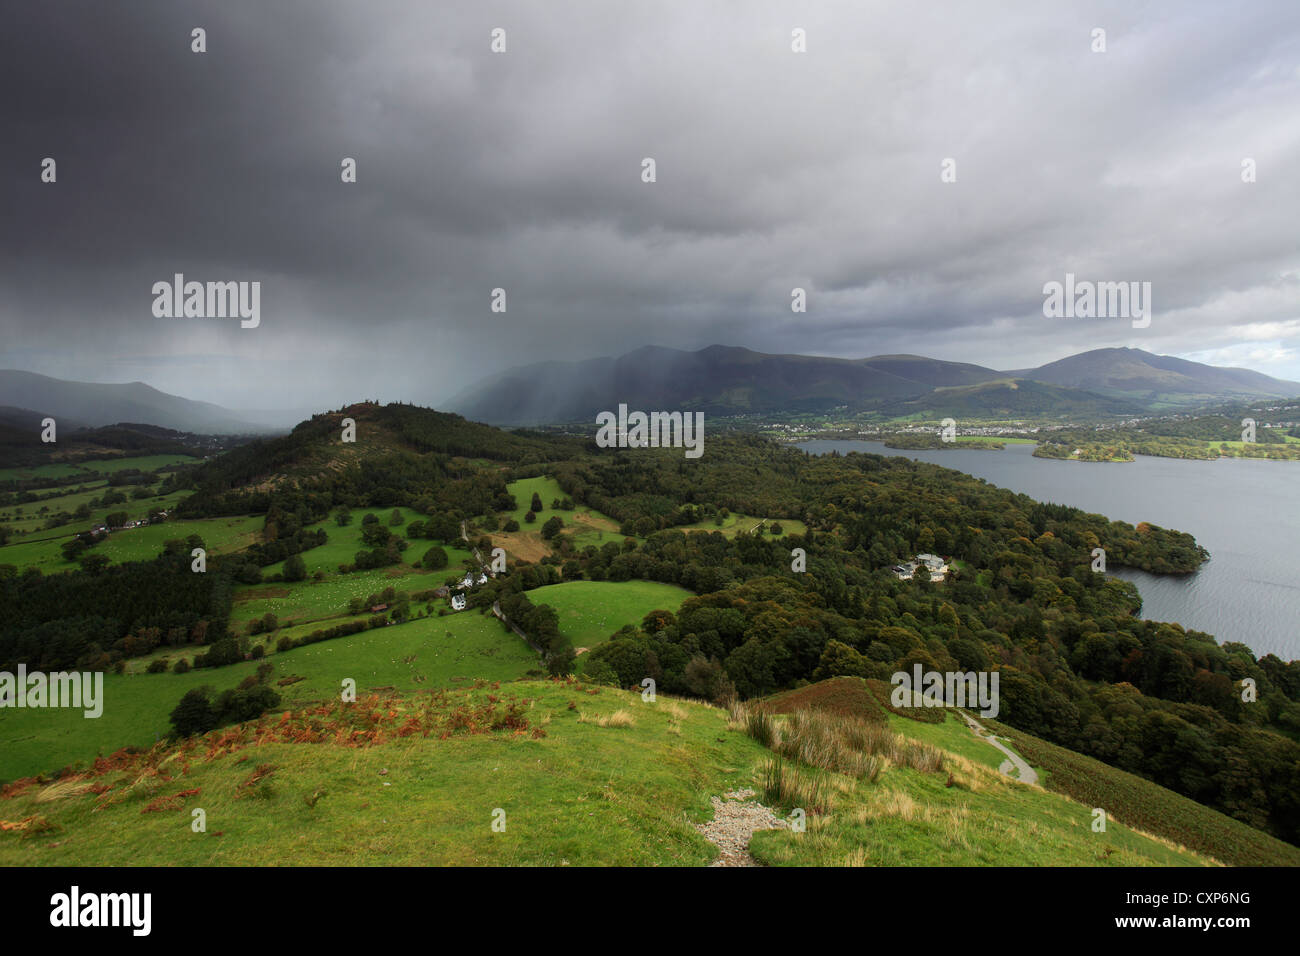 Stormy view overlooking Skiddaw mountain and Derwentwater from Cat Bells Fell, Keswick town, Lake District National - Stock Image